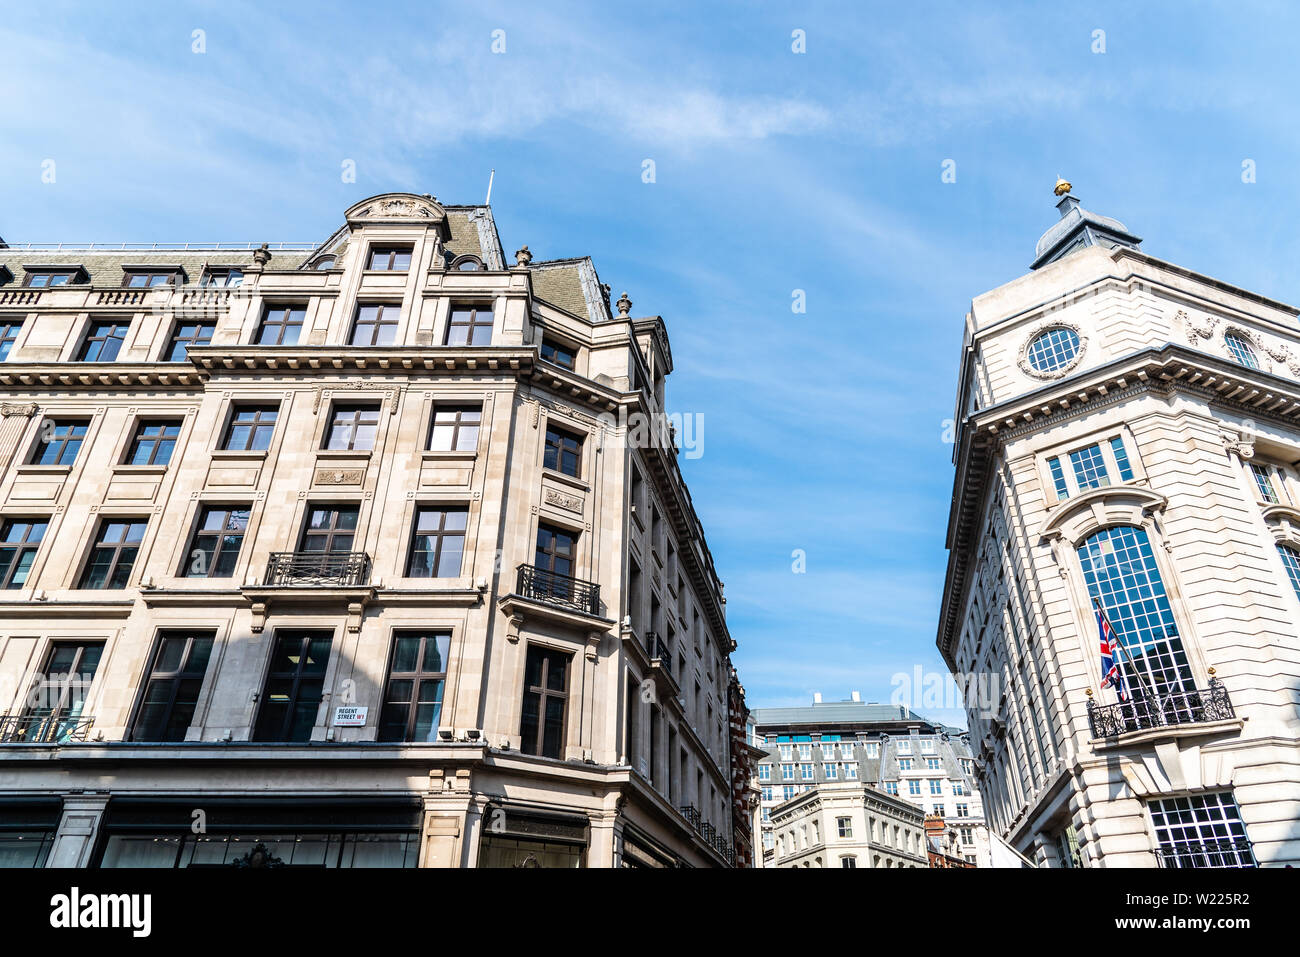 London, UK - May 15, 2019: Low angle view of old buildings in Regent Street in London against blue sky Stock Photo